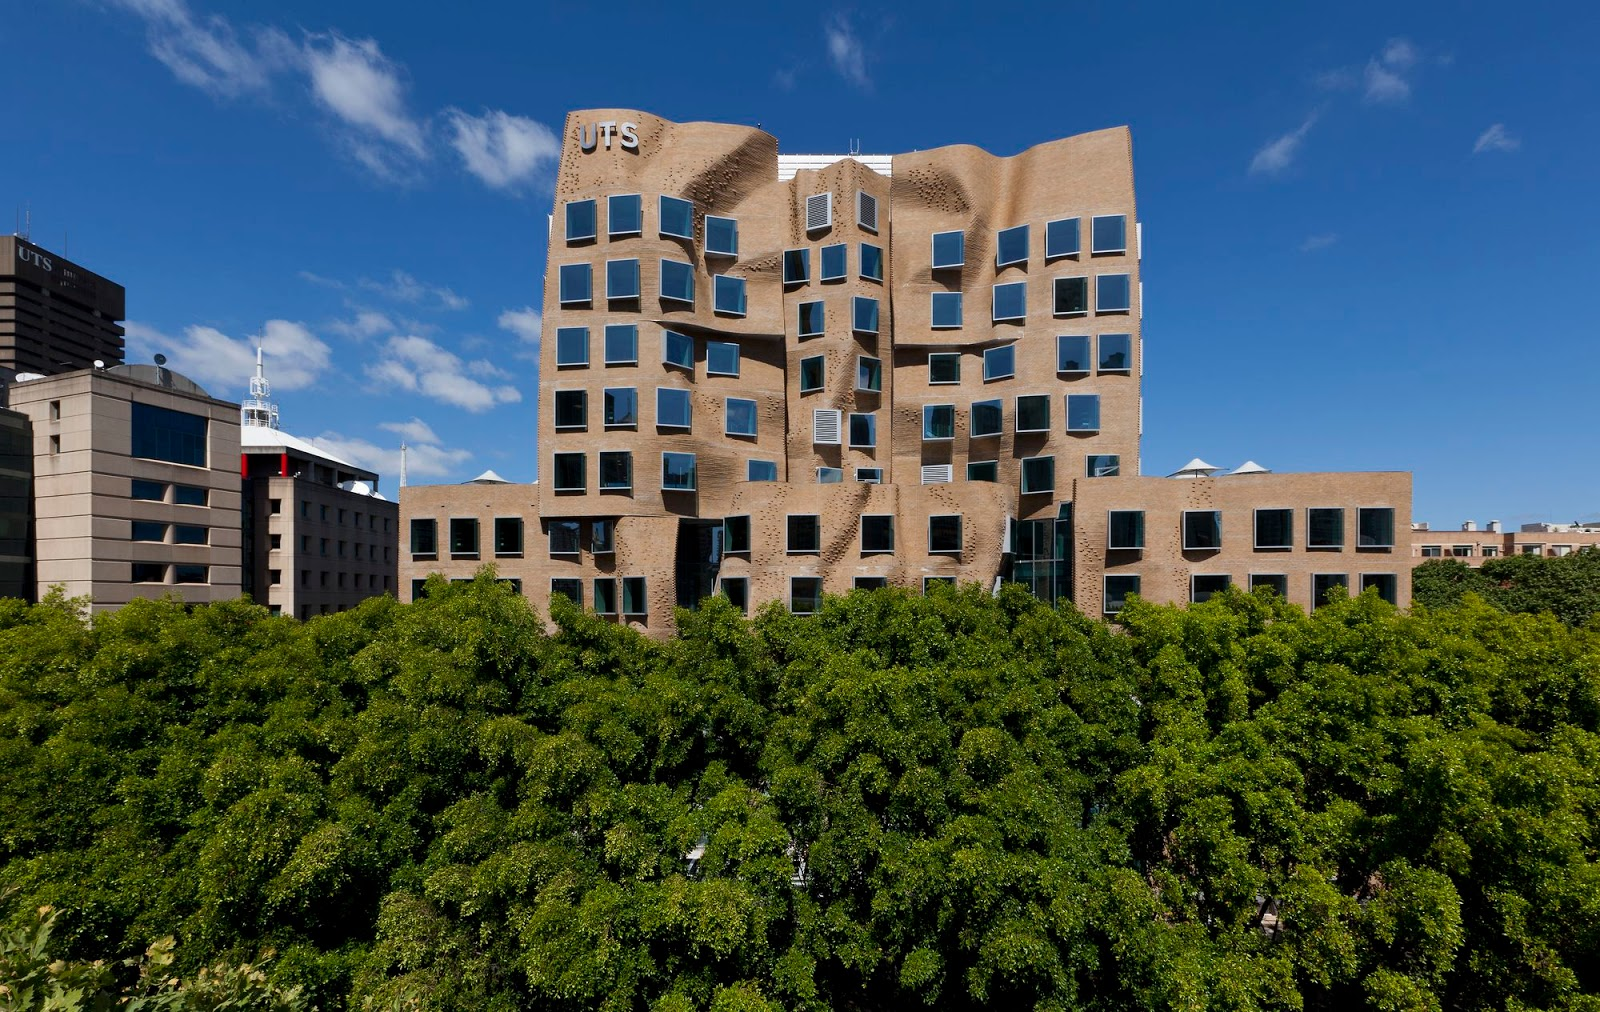 frank gehry architects a f a s i a the dr chau chak wing building is the first building in australia designed by frank gehry one of the world s most influential architects